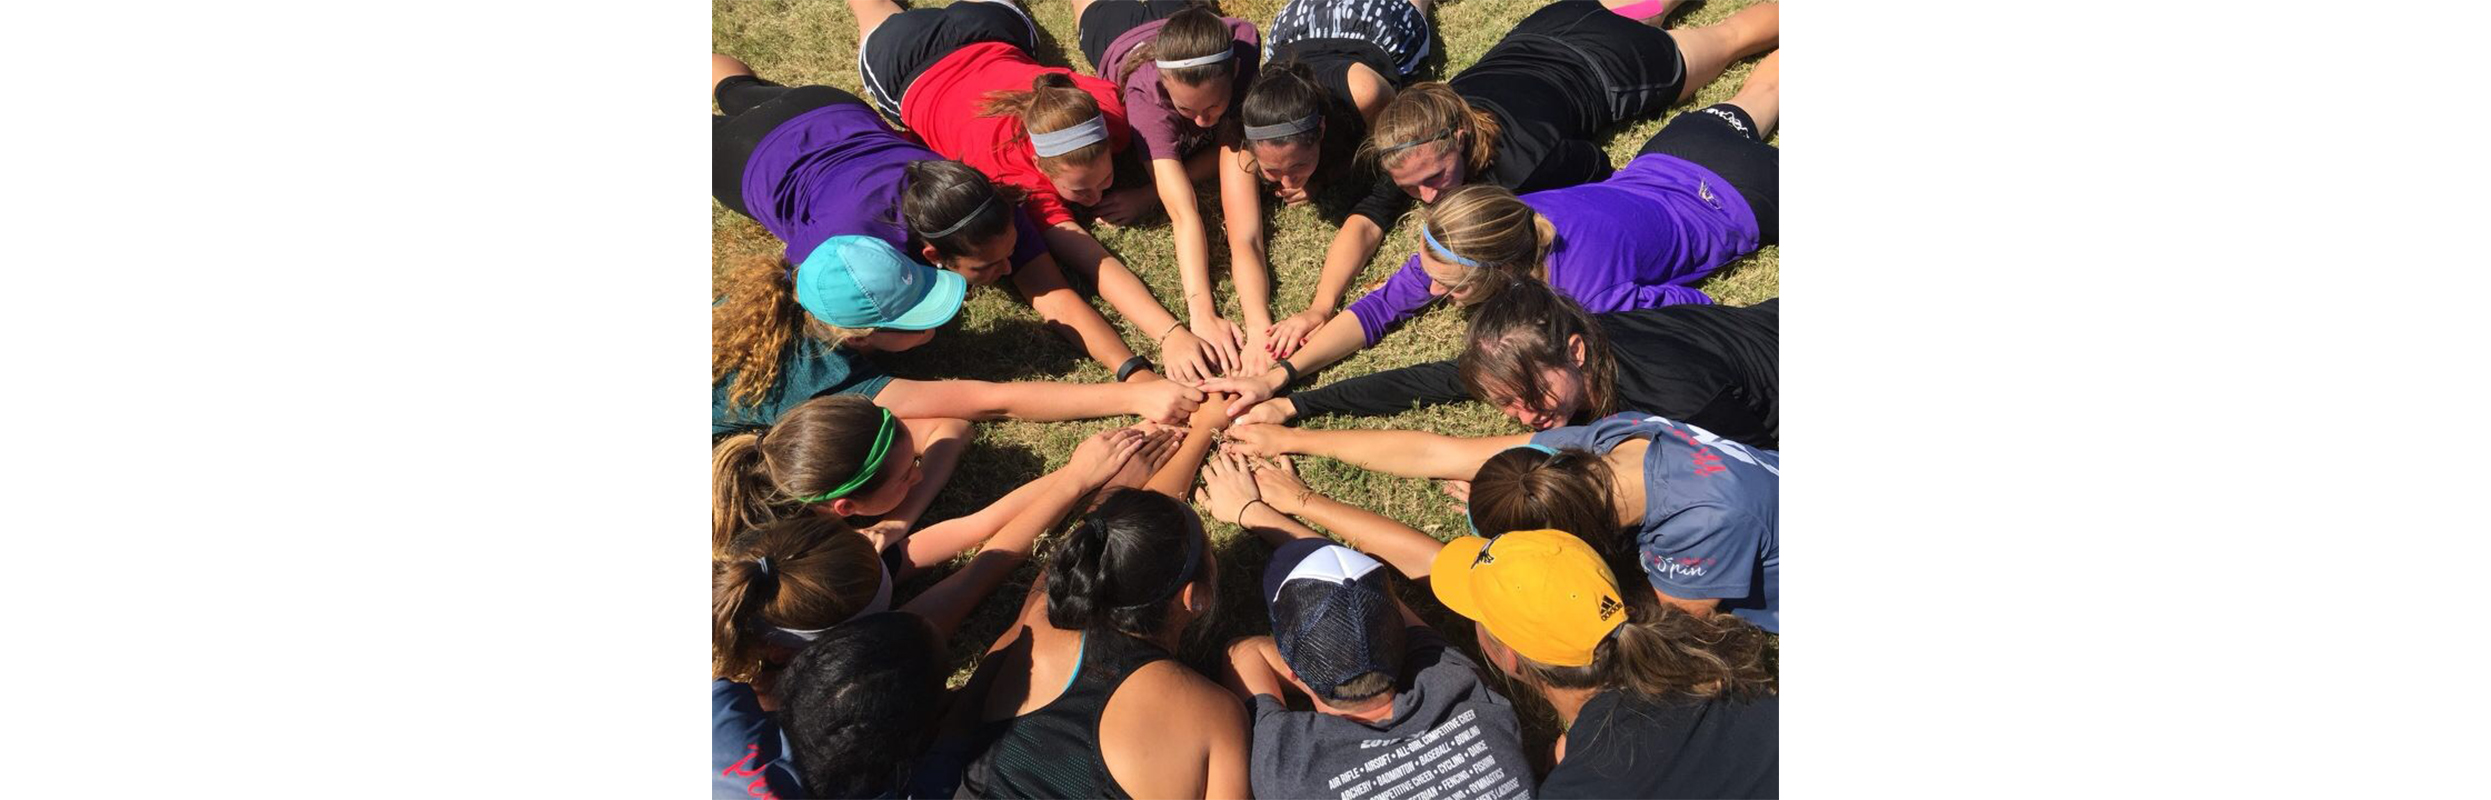 KSU Women's Ultimate Frisbee